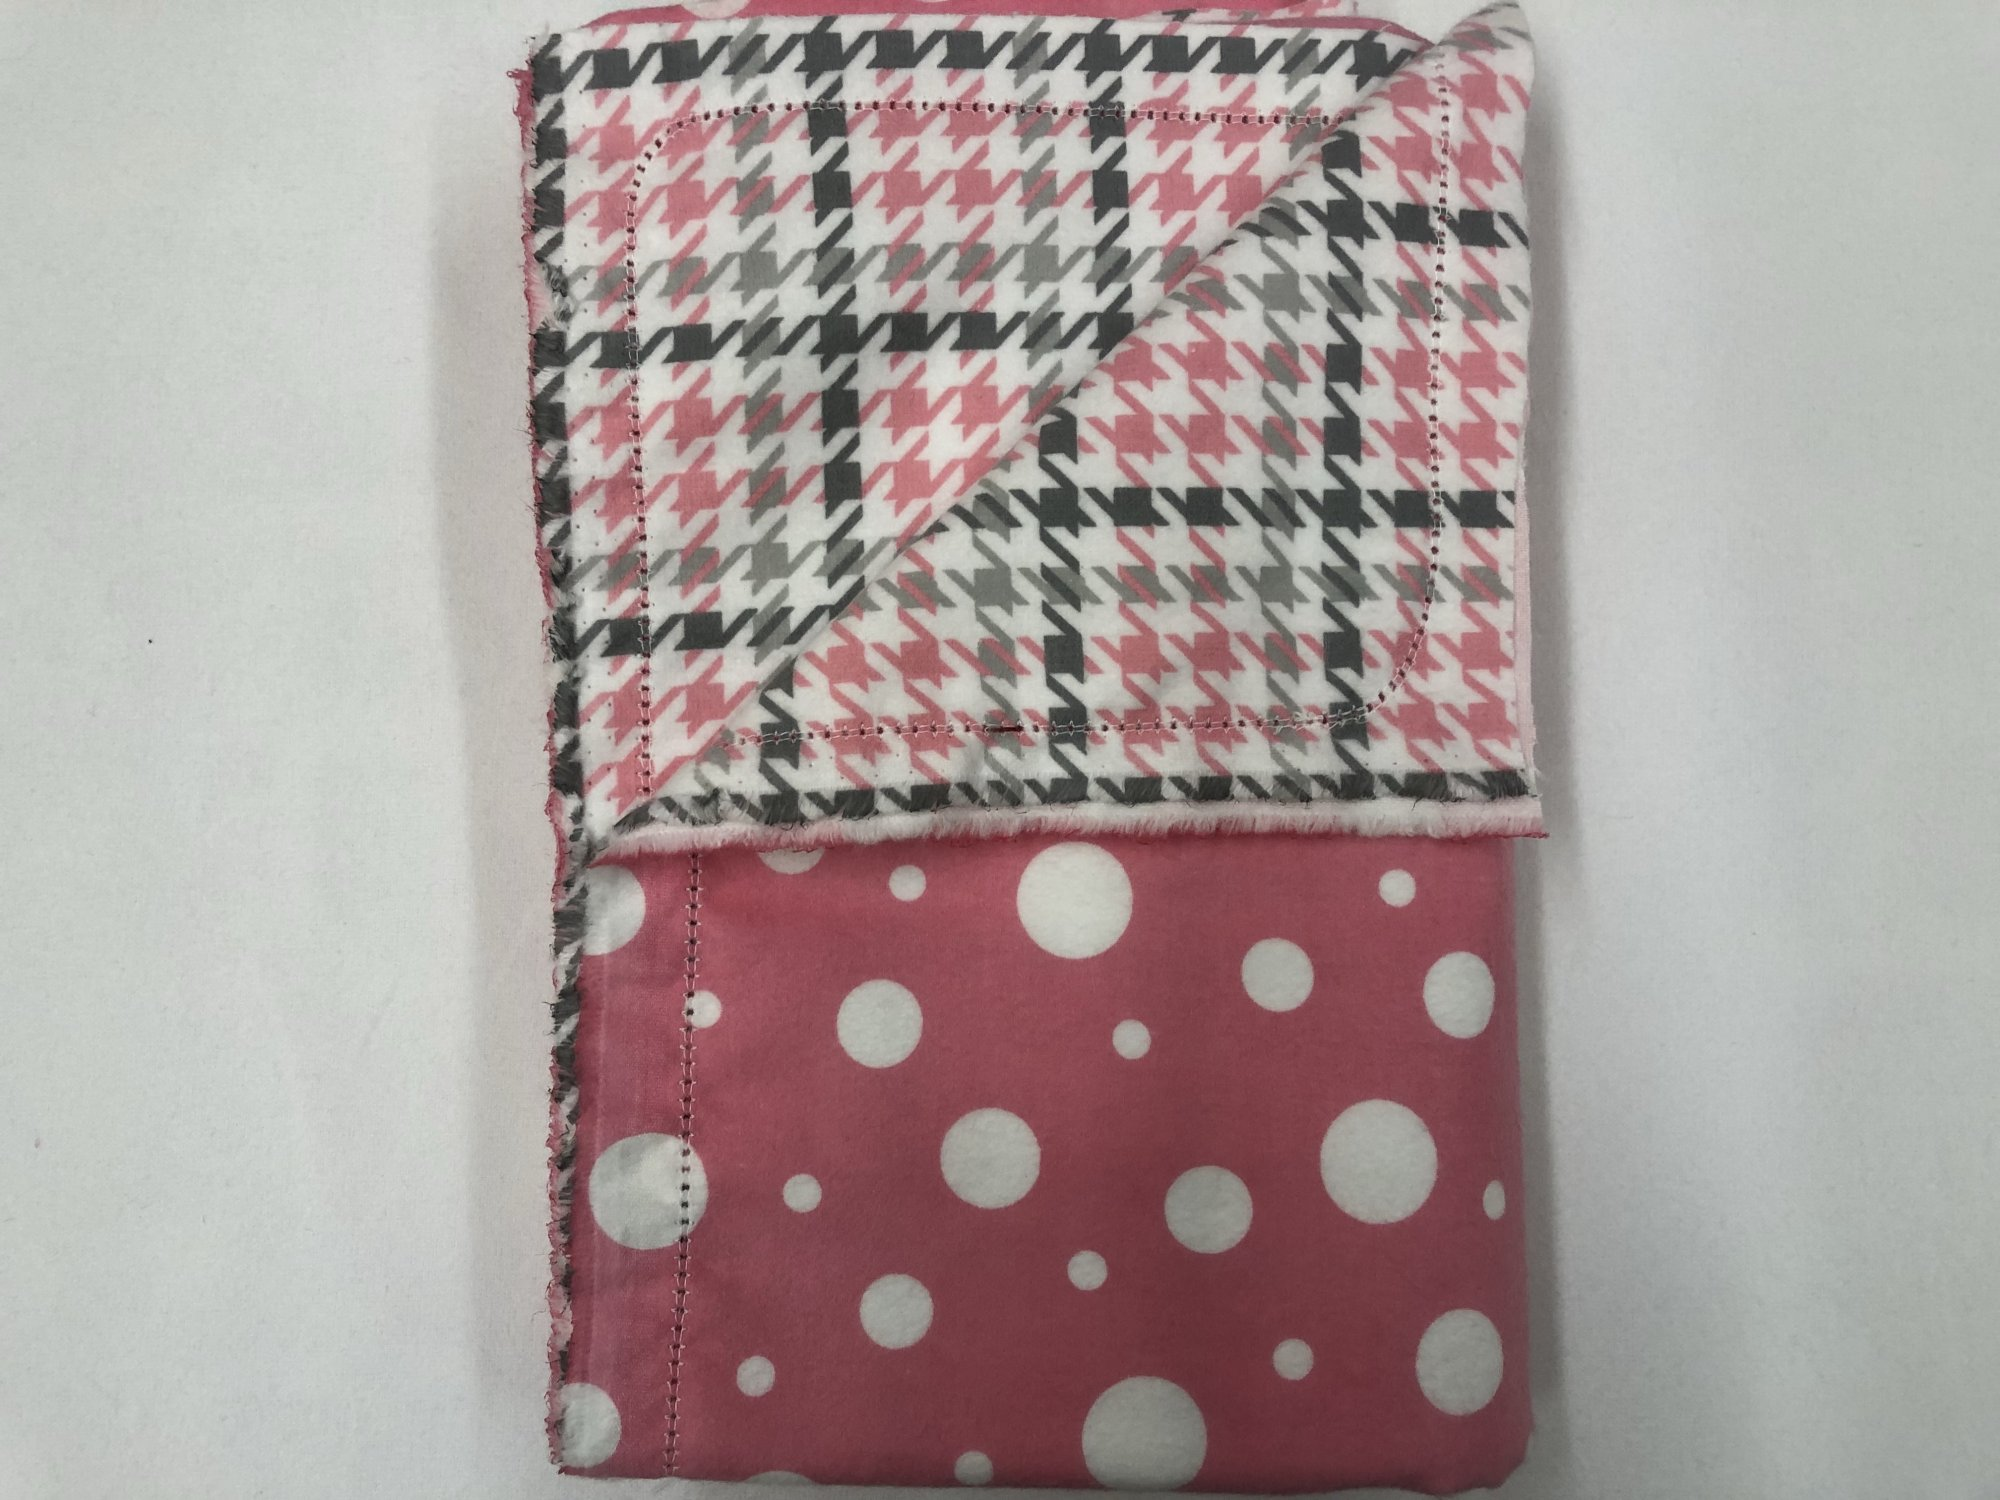 Large white polkadots on pink background with grey/pink houndstooth on white